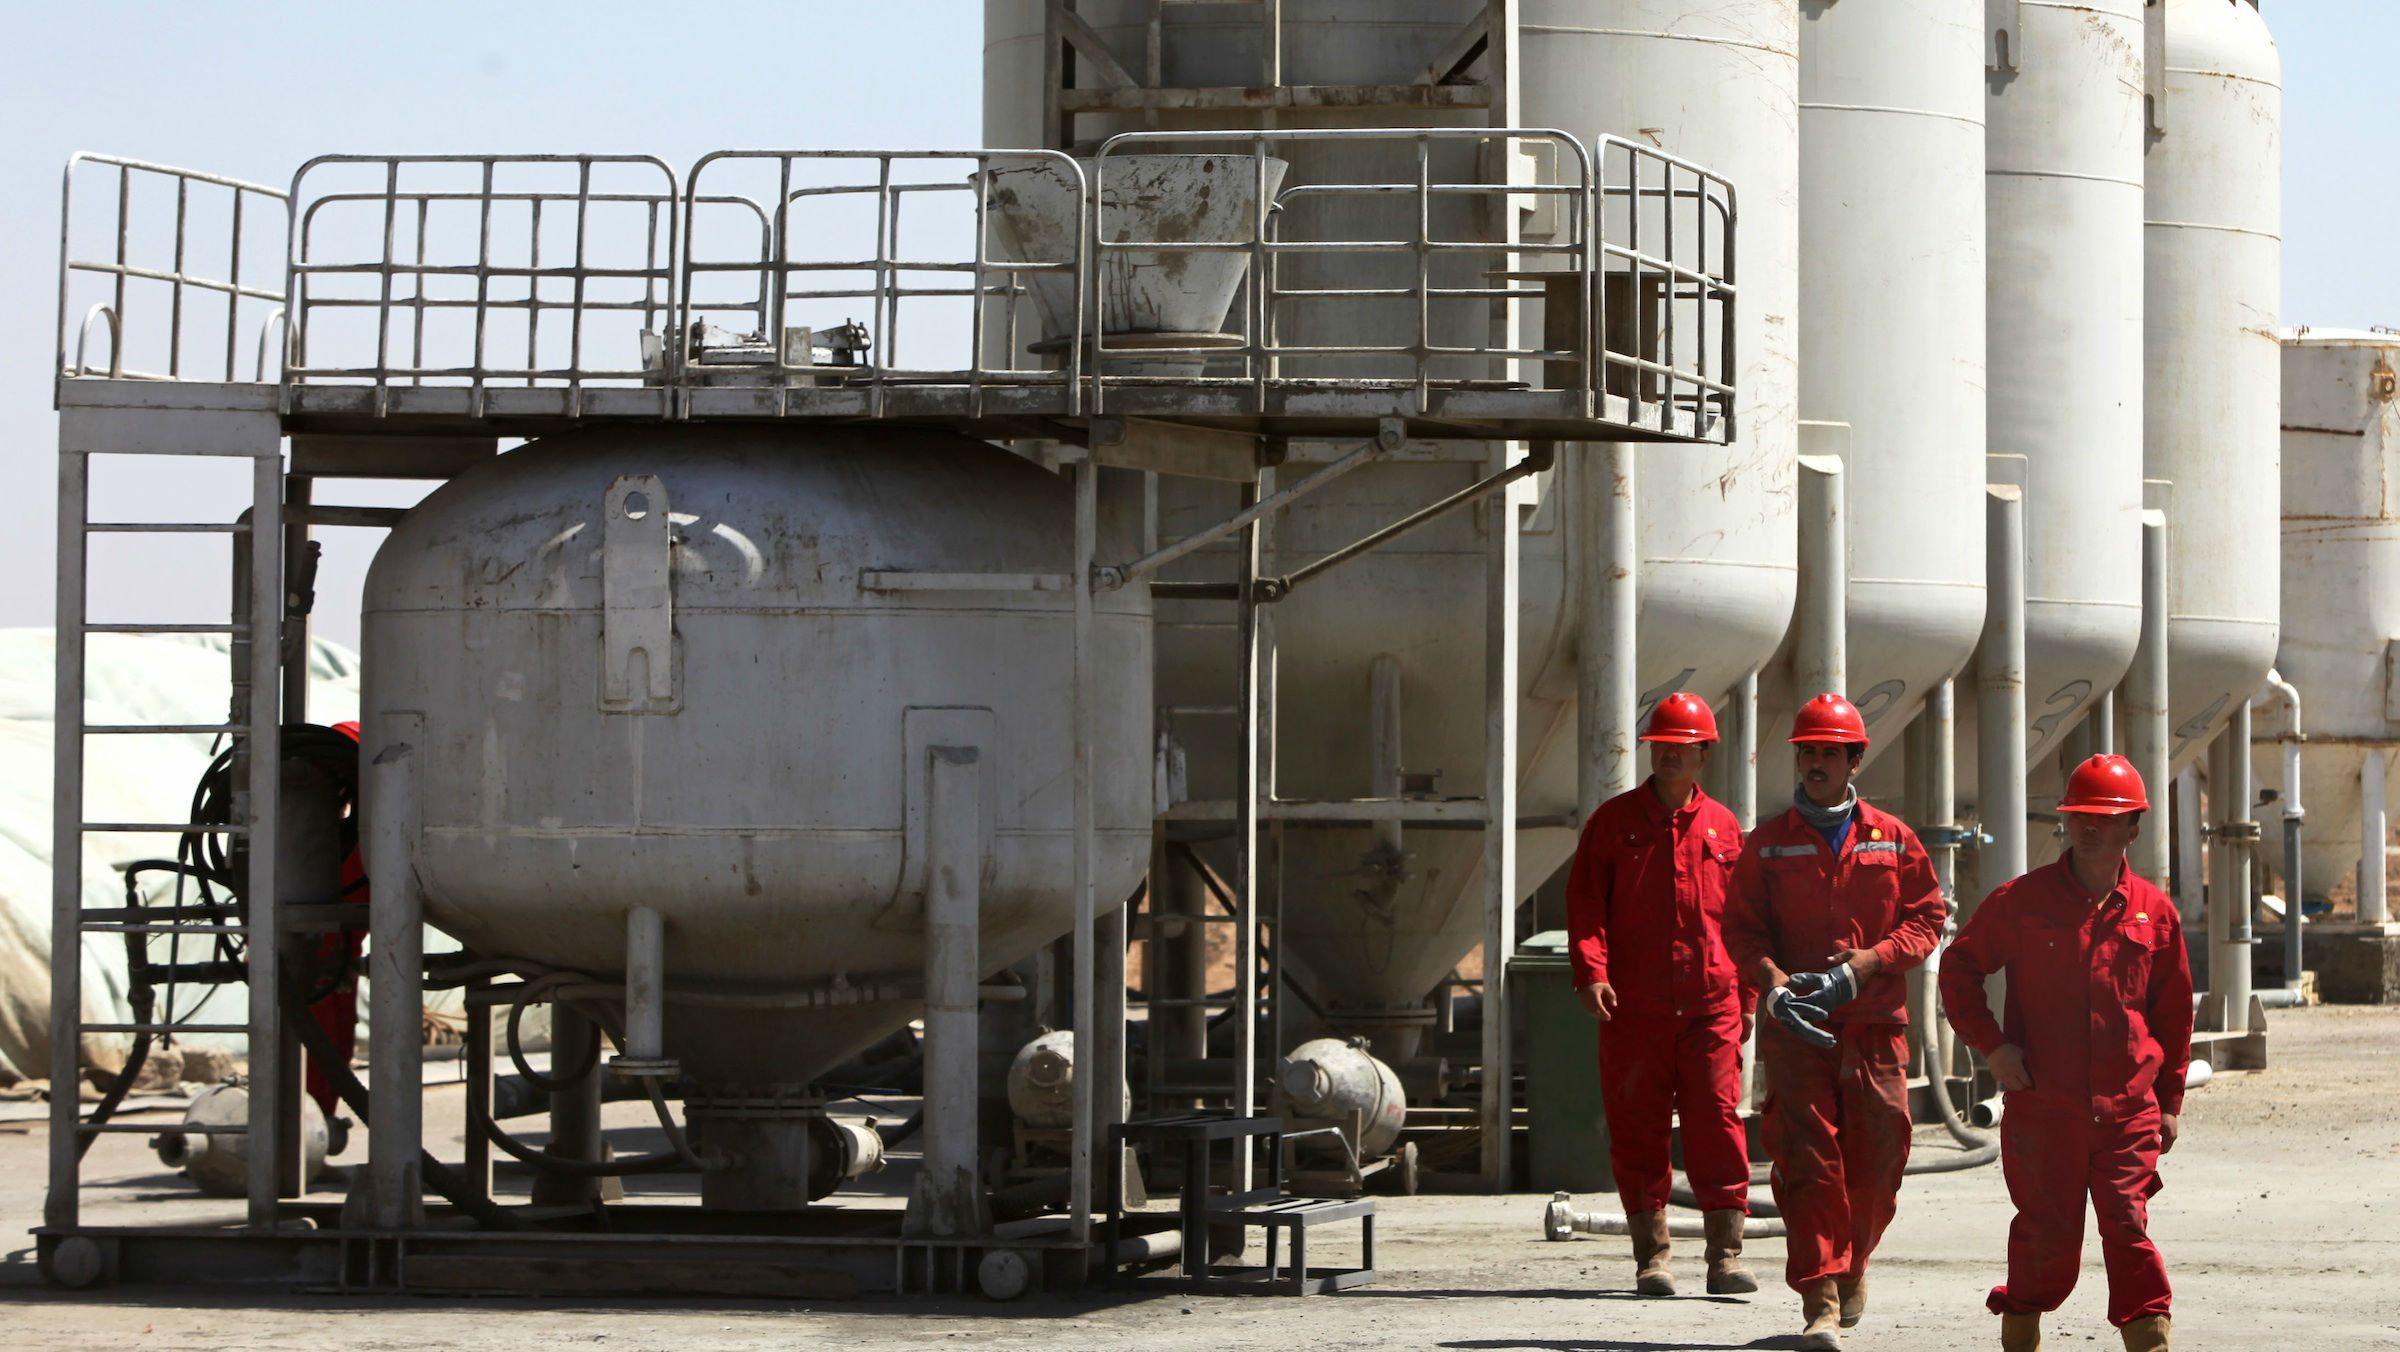 workers are seen at the al-Waha Oil Company in Wasit in southern Iraq. From among the most outspoken of critics of the 2003 U.S.-led invasion to topple former Iraqi dictator Saddam Hussein, China has emerged as one of the biggest economic beneficiaries of the war, snagging lucrative deals and shrugging off the security risks with the country's political instability for the promise of oil, while western firms were largely subdued in their interest in Iraq's recent oil auctions.